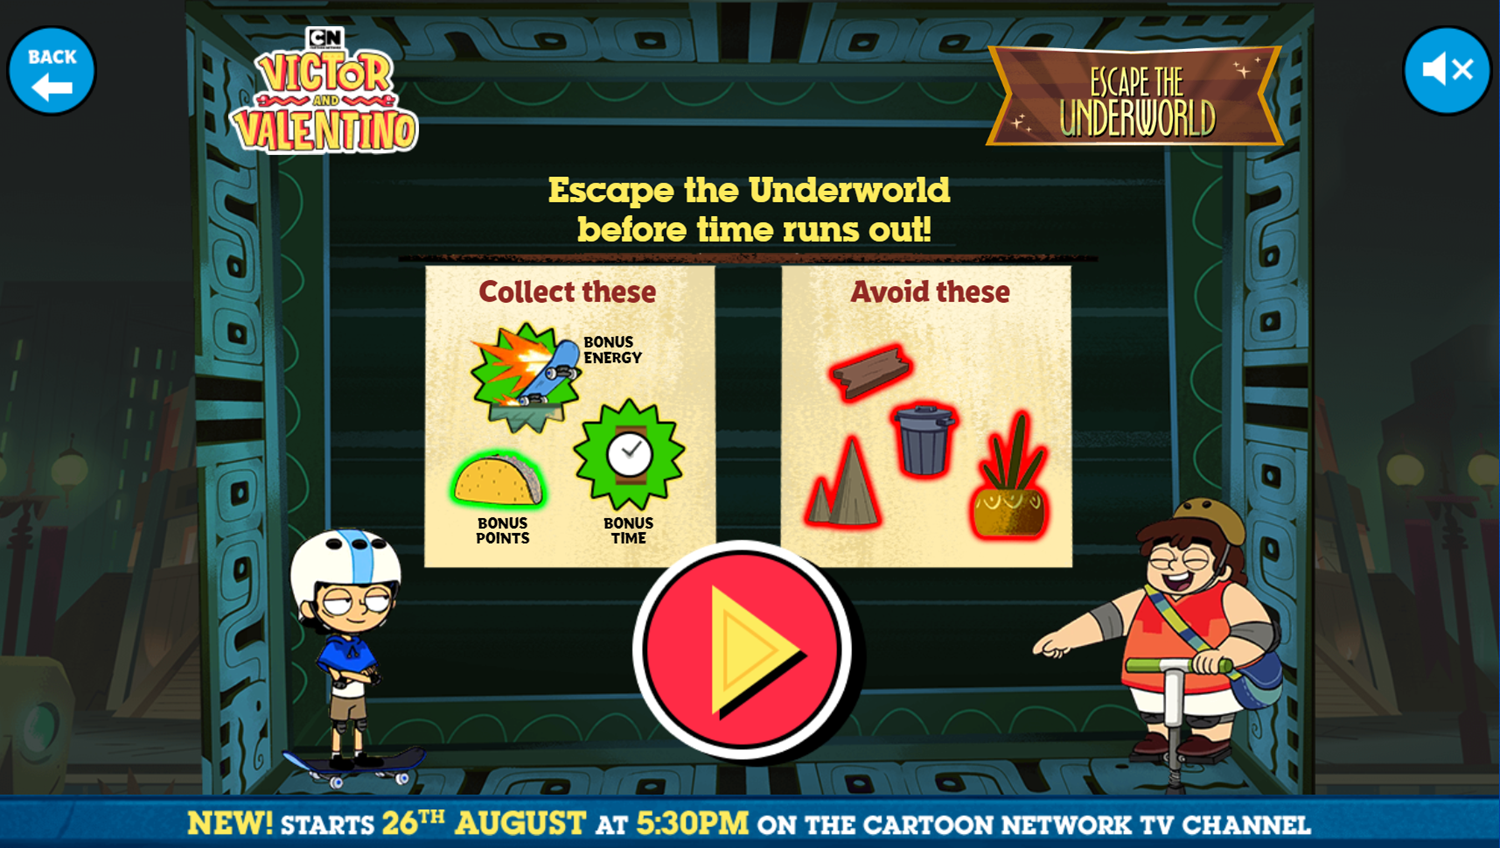 Victor and Valentino Mission to Monte Macabre Case Game Escape The Underworld How To Play Screenshot.